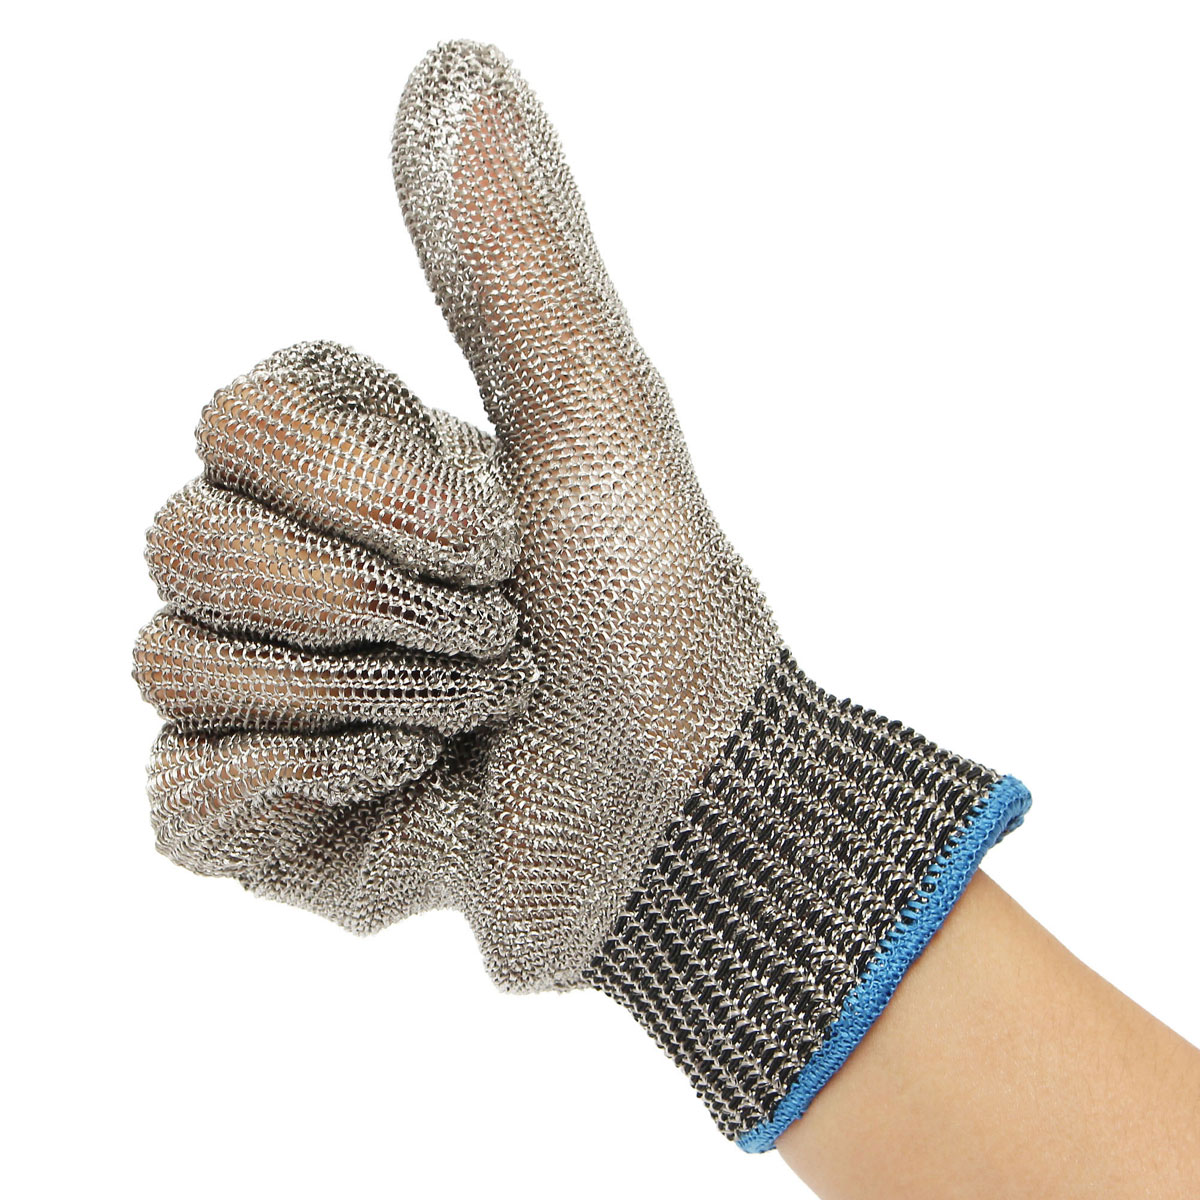 how to demonstrate cut resistant glovew